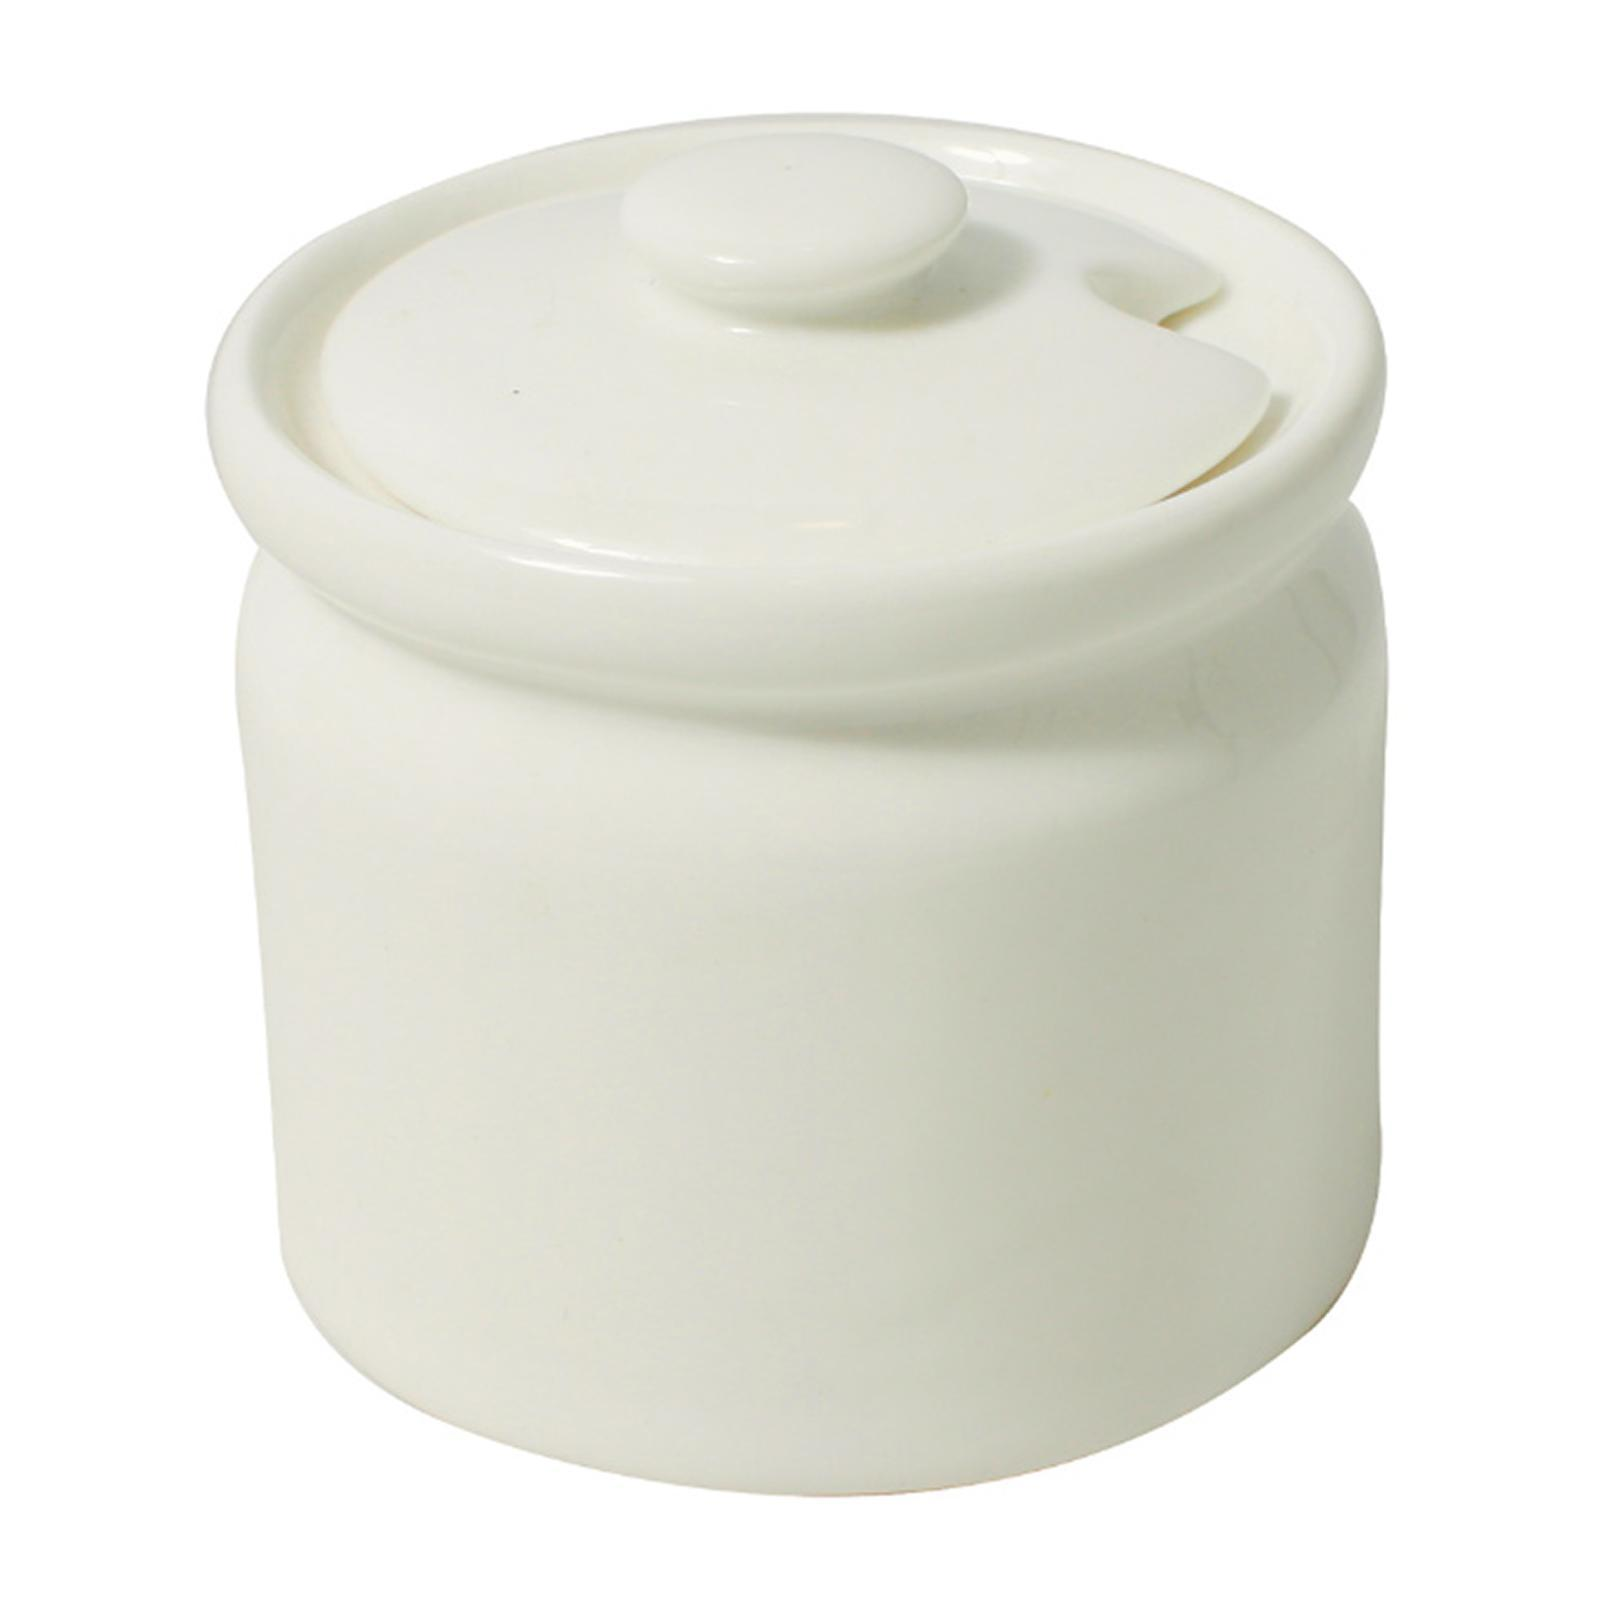 Cerabon Essentials Porcelain Sugar Pot With Lid Diameter 79 x H75MM - By ToTT